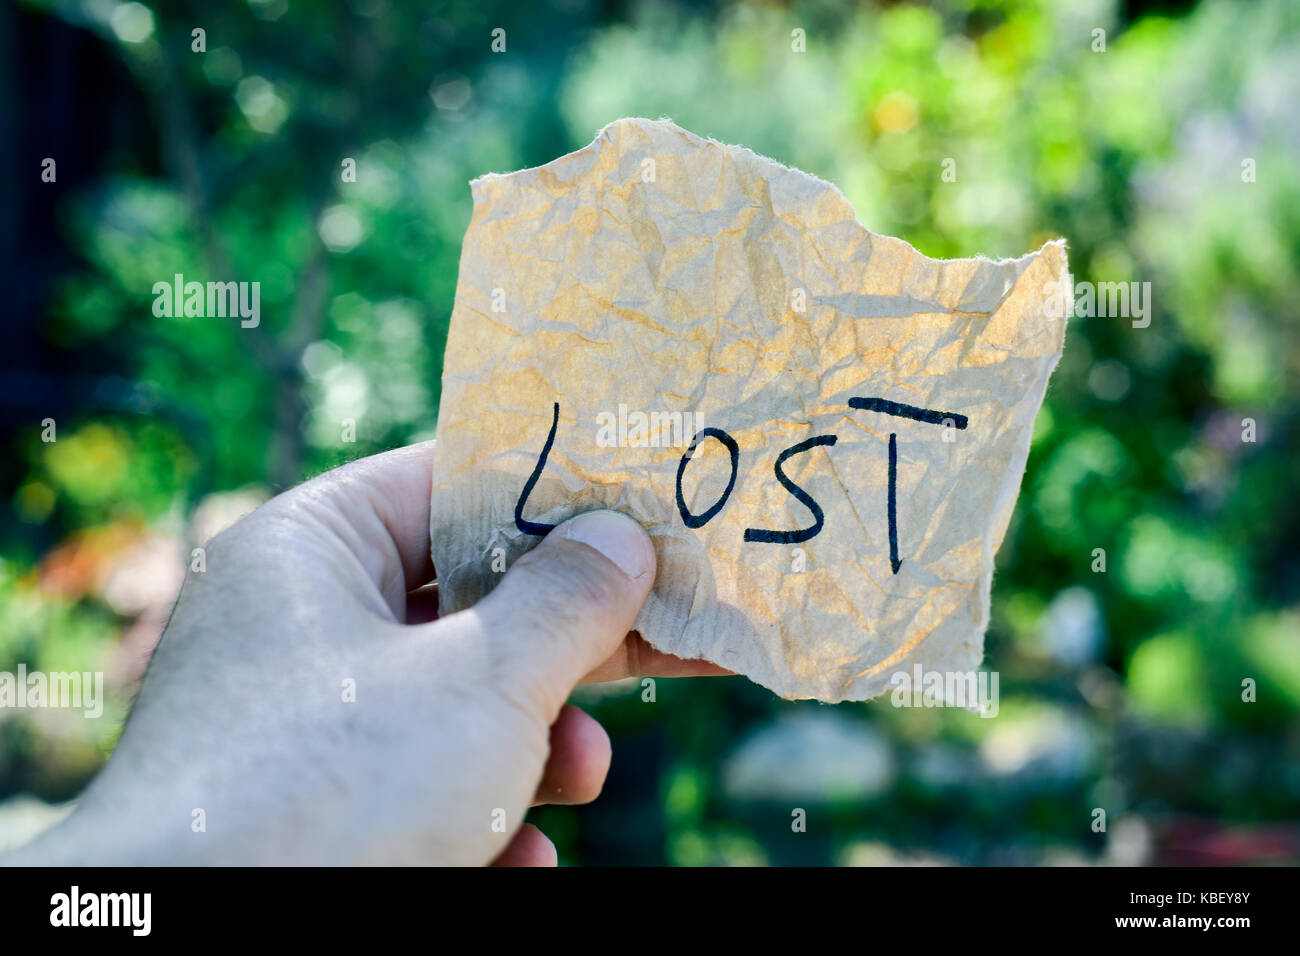 closeup of a caucasian man in the forest, with a note with the text lost in his hand - Stock Image